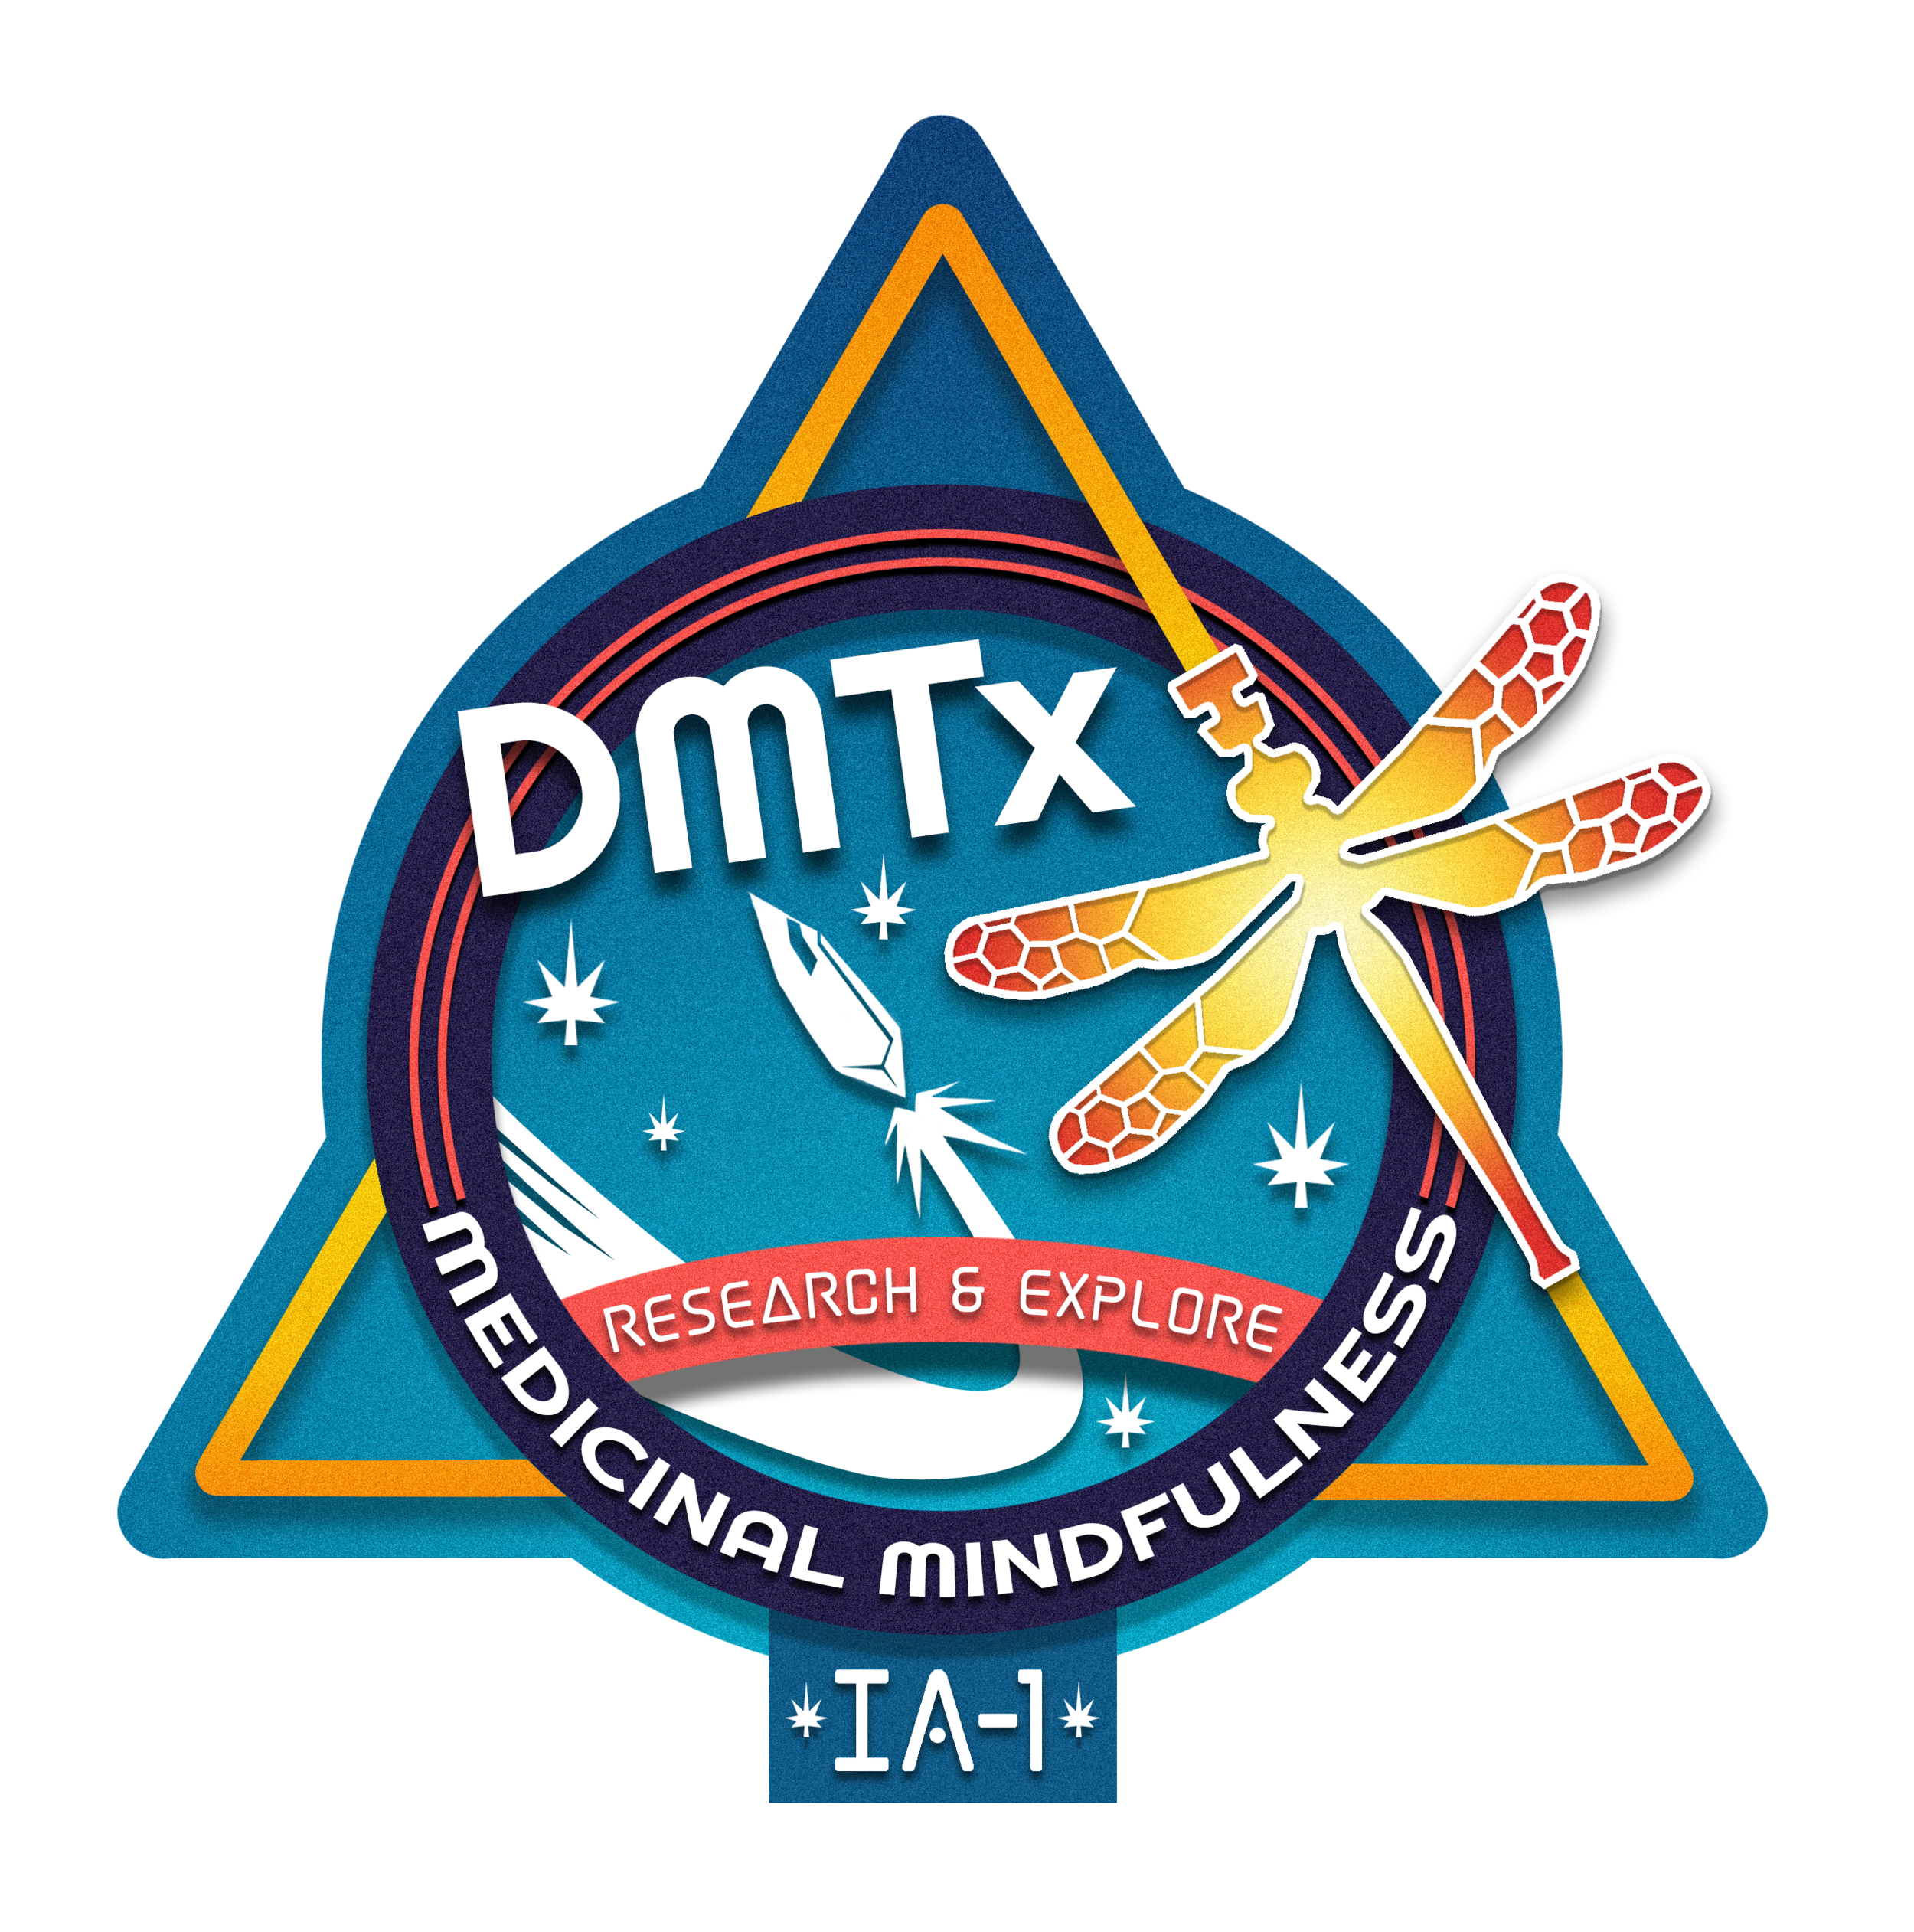 dmt-medicinal-mindfulness-psychedelic-sitters-school.png